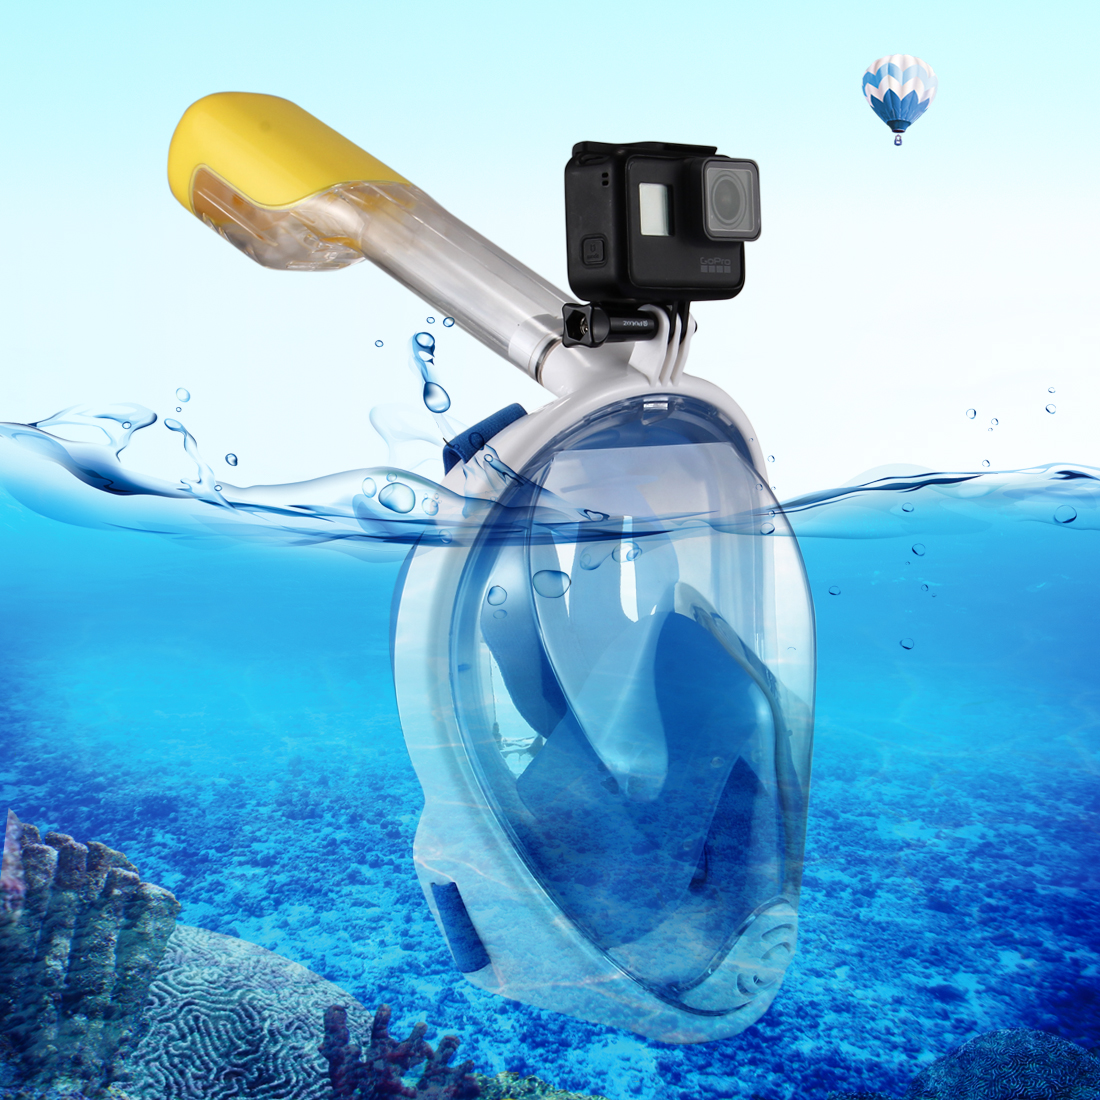 PULUZ I Version Water Sports Diving Equipment Full Dry Snorkel Mask for GoPro HERO5 /4 /3+ /3 /2 /1, S/M Size (Blue)